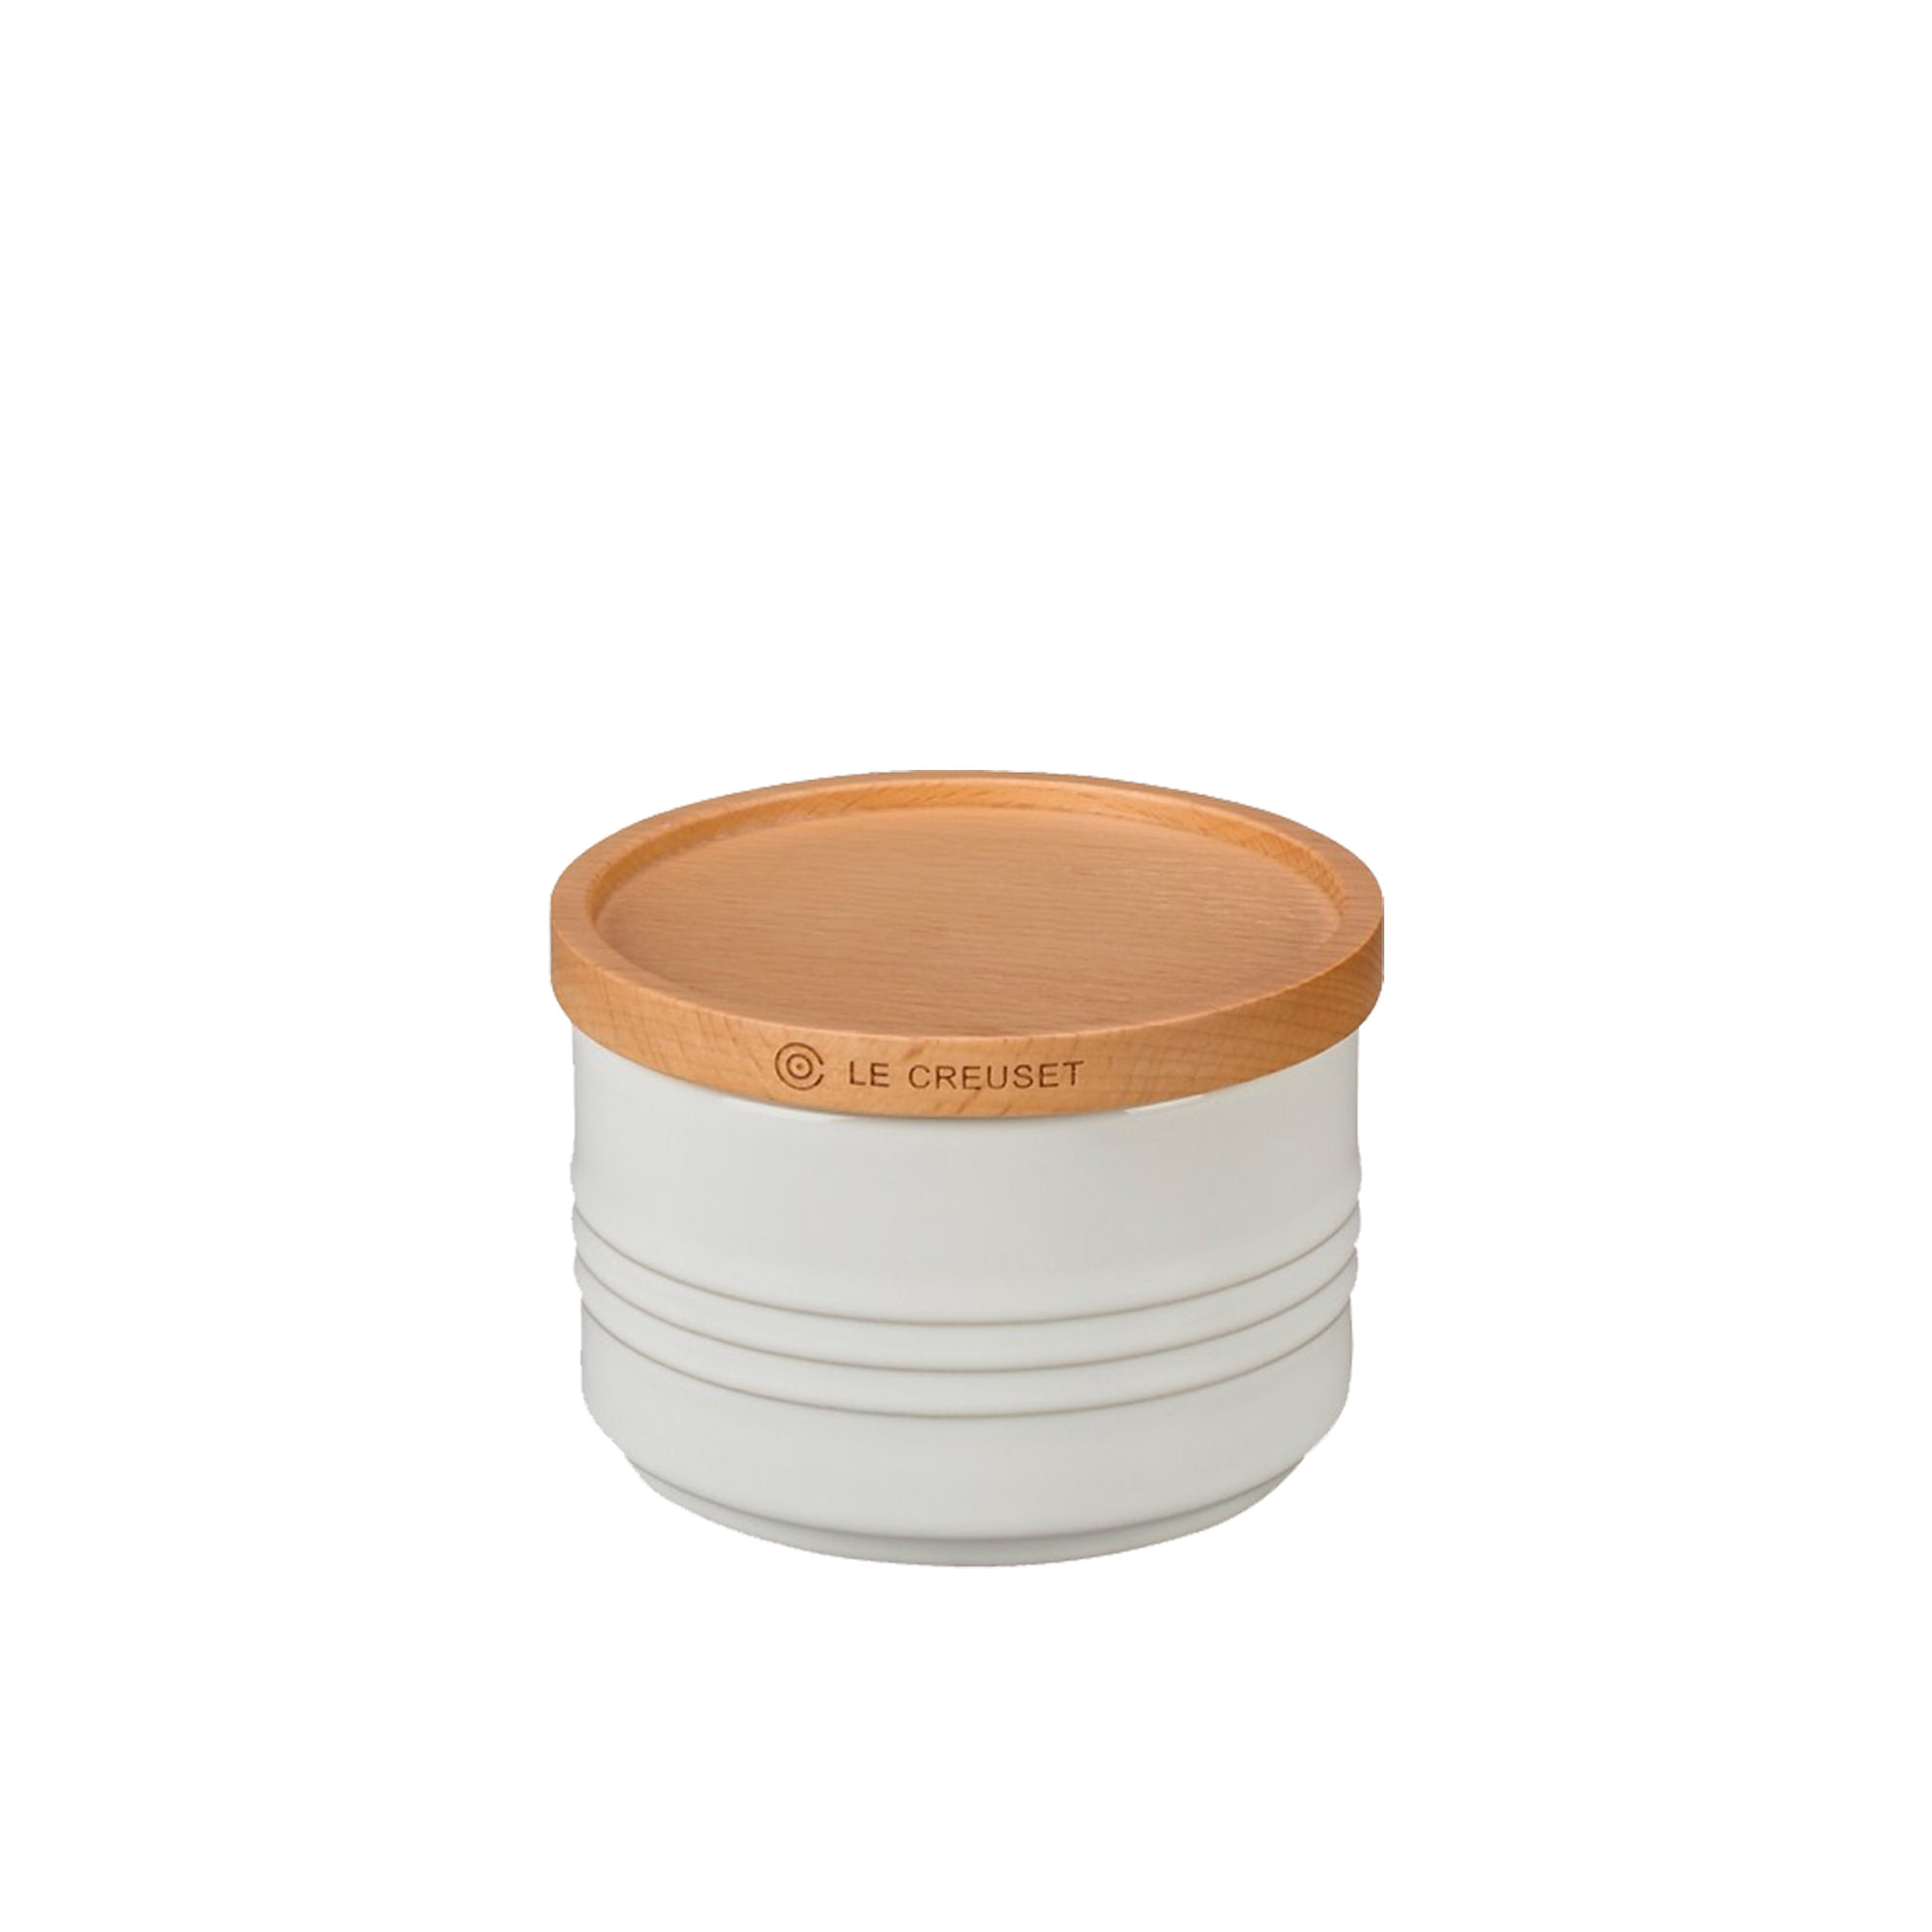 Le Creuset Stoneware Storage Canister Small Cotton